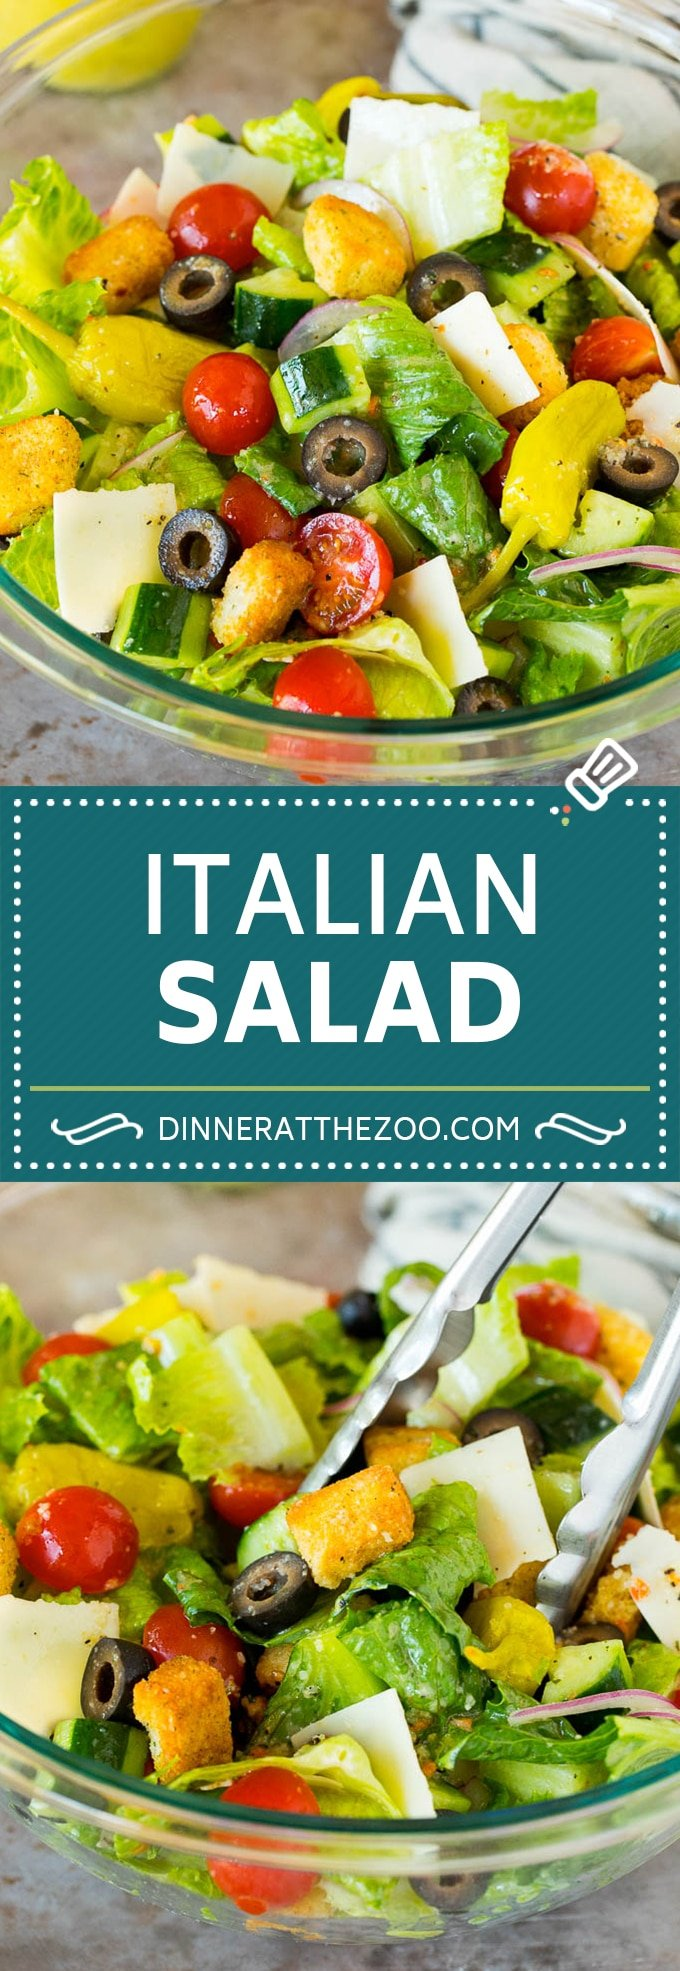 This Italian salad is a blend of fresh greens, cucumber, cherry tomatoes, olives, cheese and croutons, all tossed together in a homemade dressing.